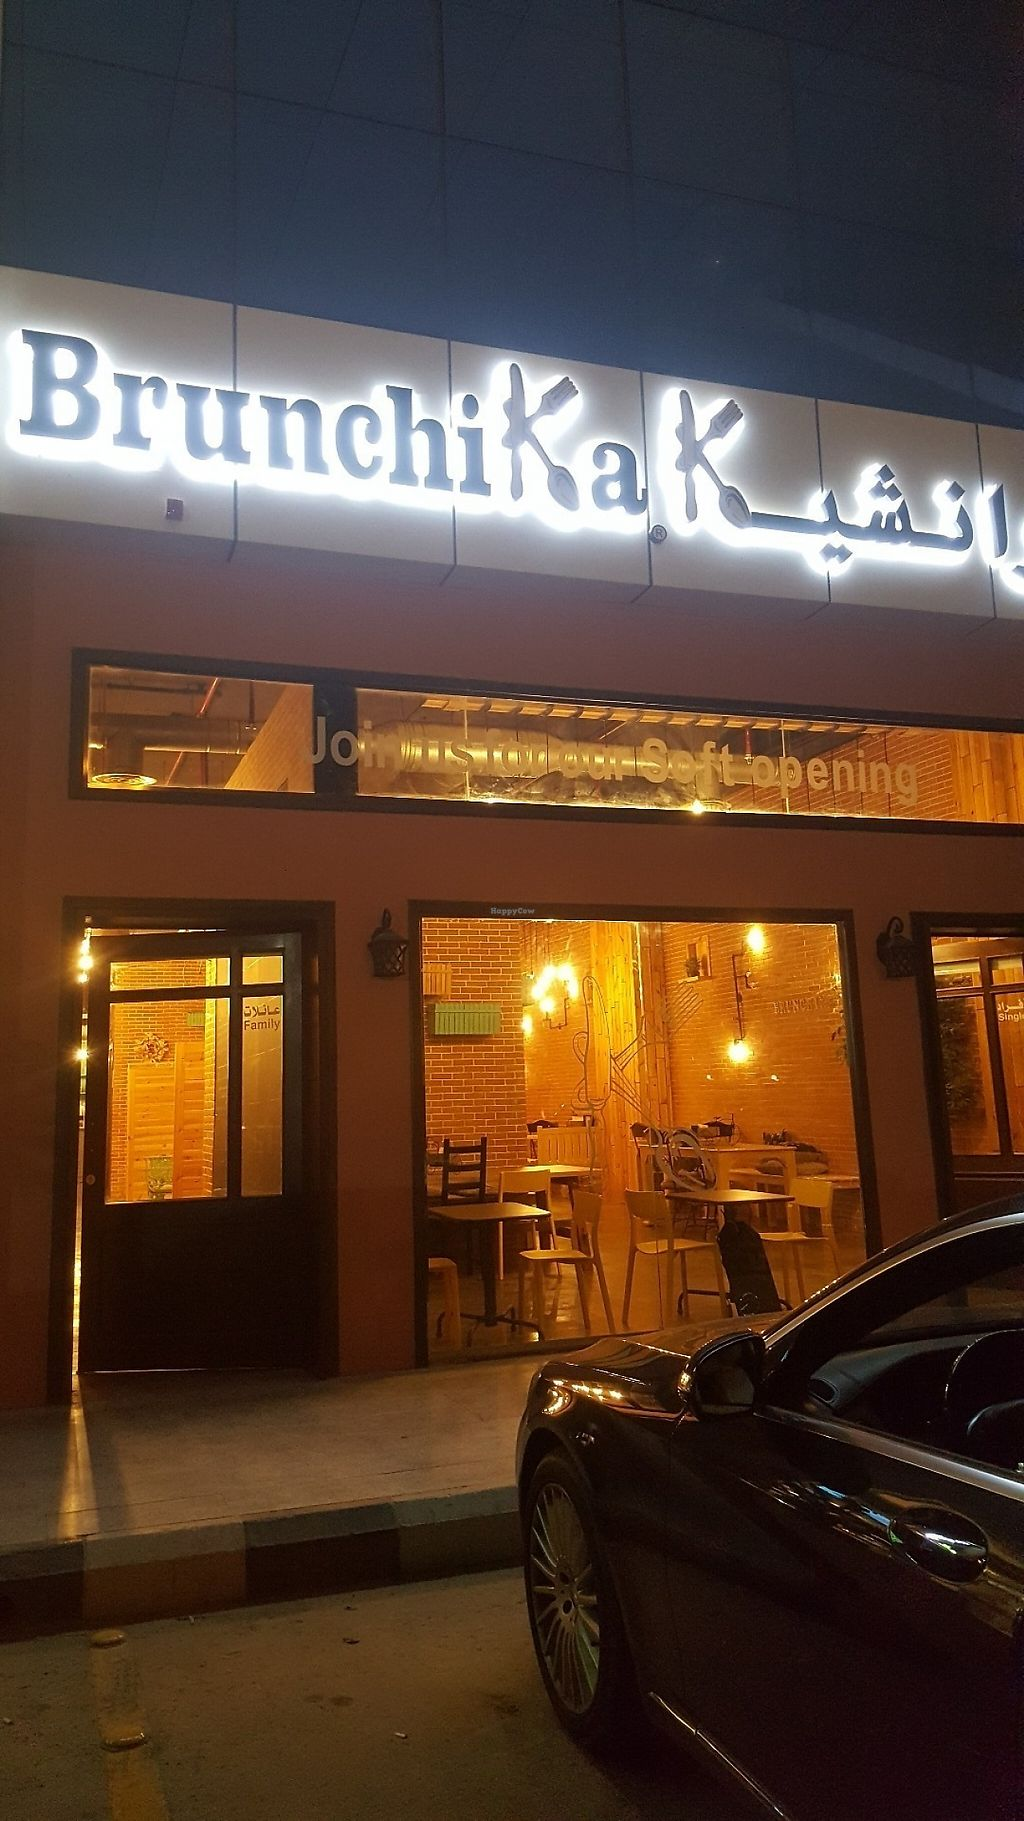 """Photo of Brunchika  by <a href=""""/members/profile/MsLianneVii"""">MsLianneVii</a> <br/>Brunchika at night <br/> May 28, 2017  - <a href='/contact/abuse/image/92814/263314'>Report</a>"""